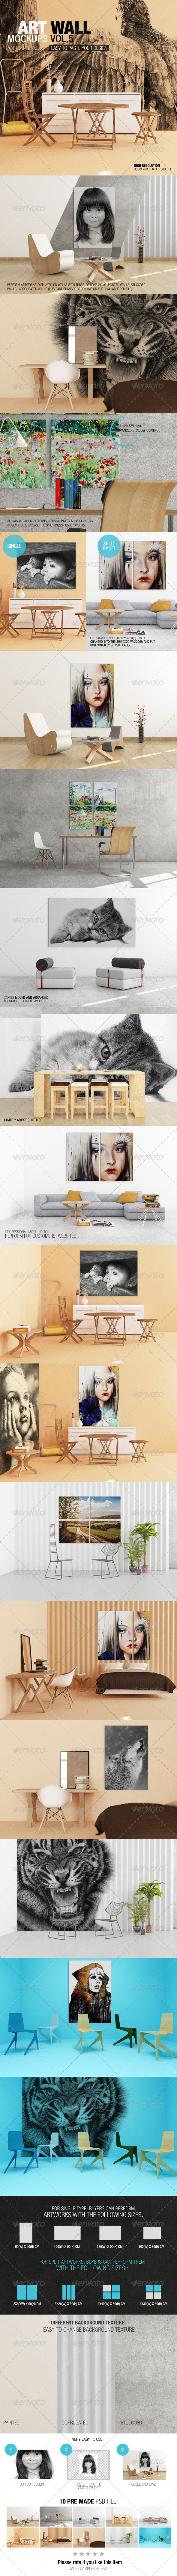 GraphicRiver Art Wall Mockups Vol.5 8752215